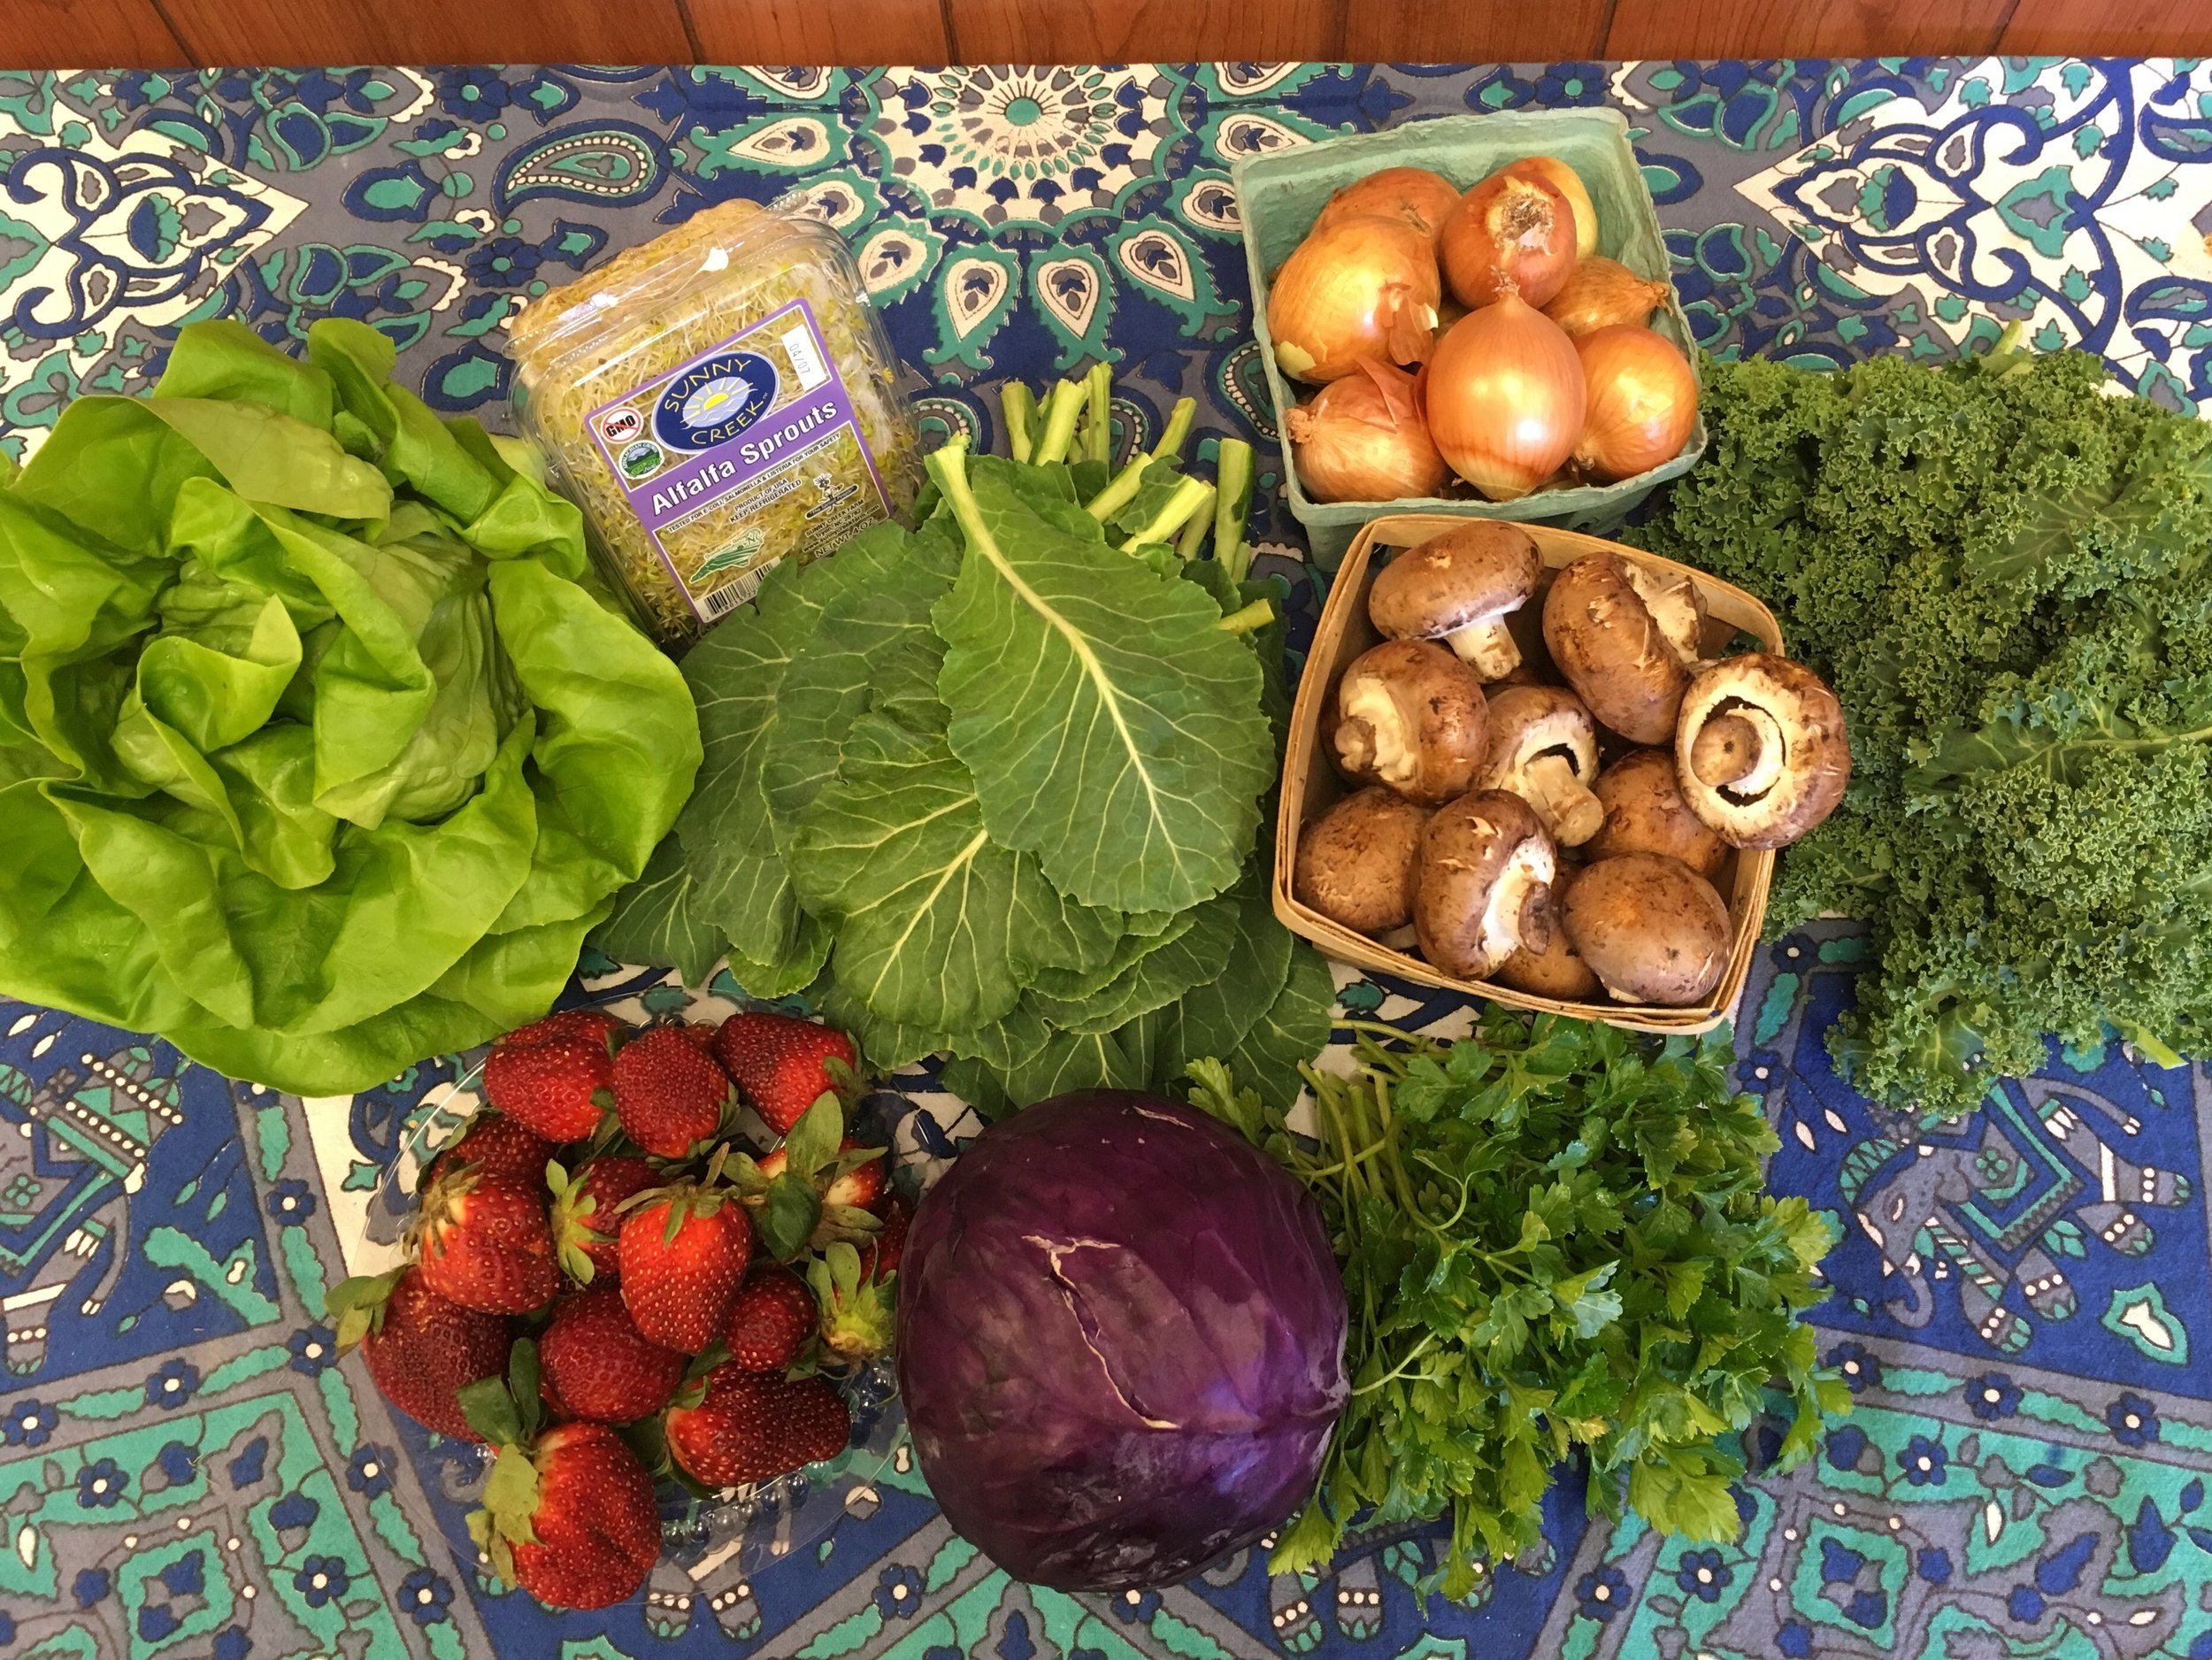 Southern Comfort Family   Hydroponic Lettuce, Alfalfa Sprouts, Green Collards, Storage Onions, Cremini Mushrooms, Siberian Curly Kale, Strawberries, Grab Bag- featuring Purple Cabbage and Parsley- also offering Carrots